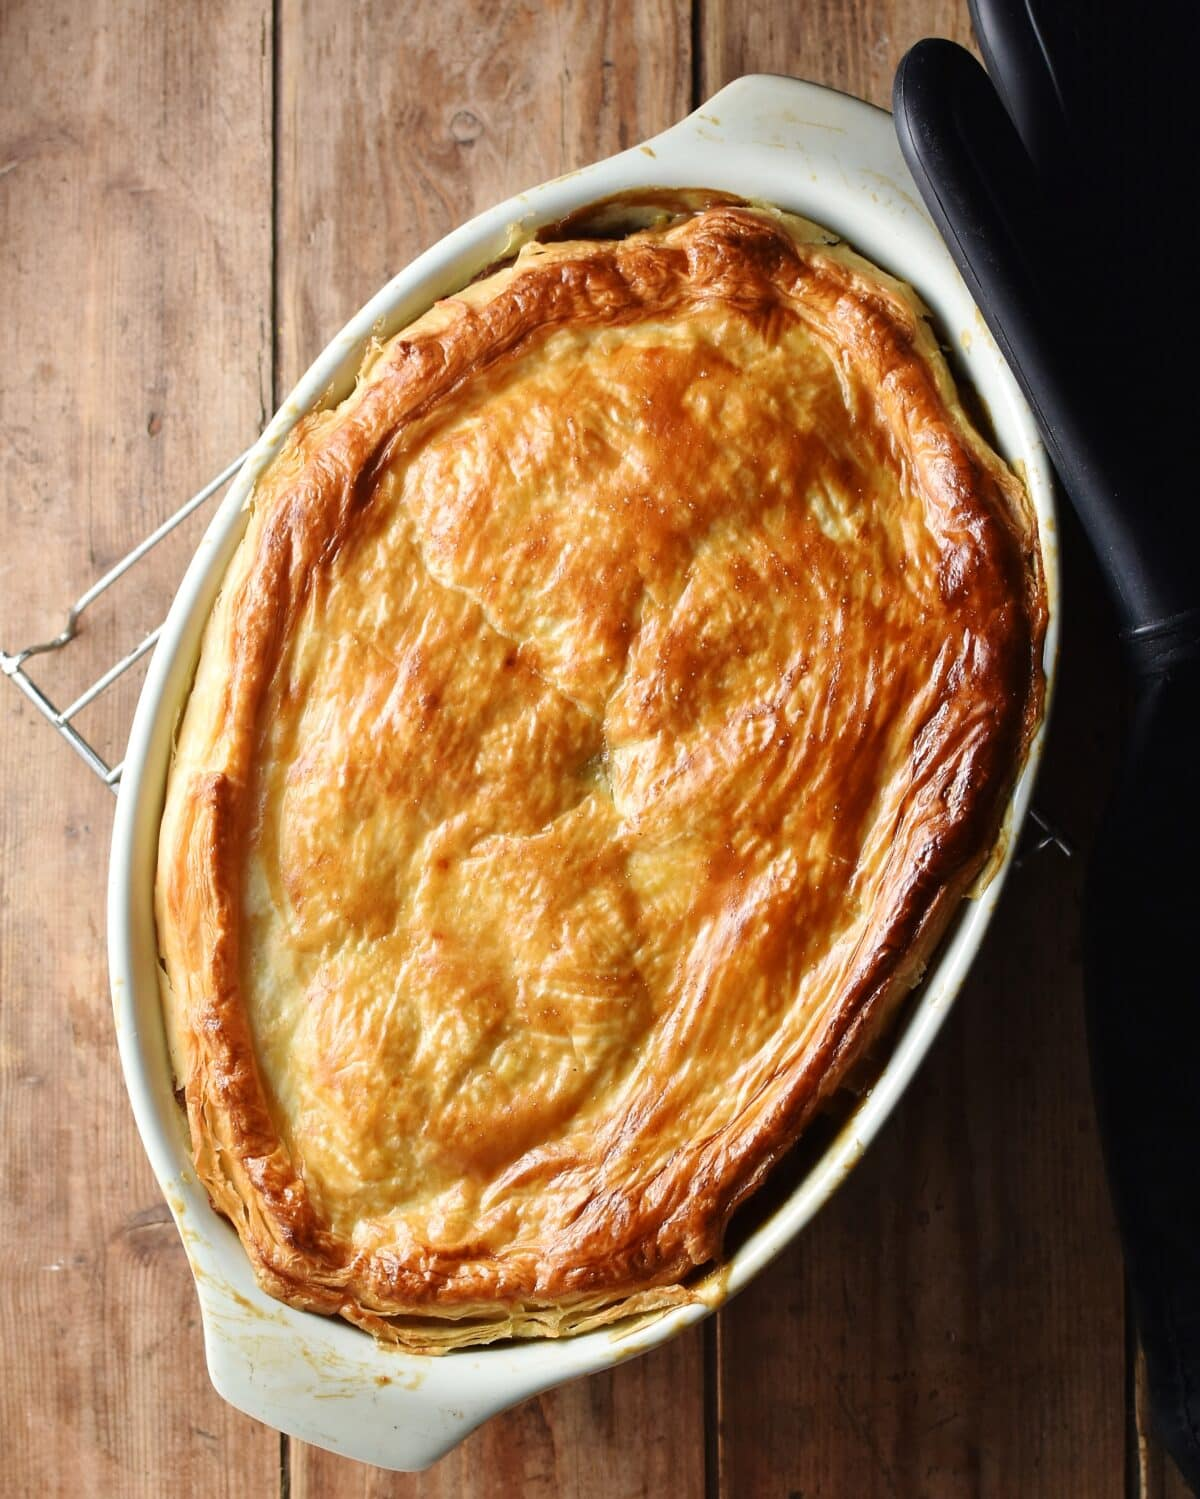 Pie with golden brown pastry on top in oval dish.